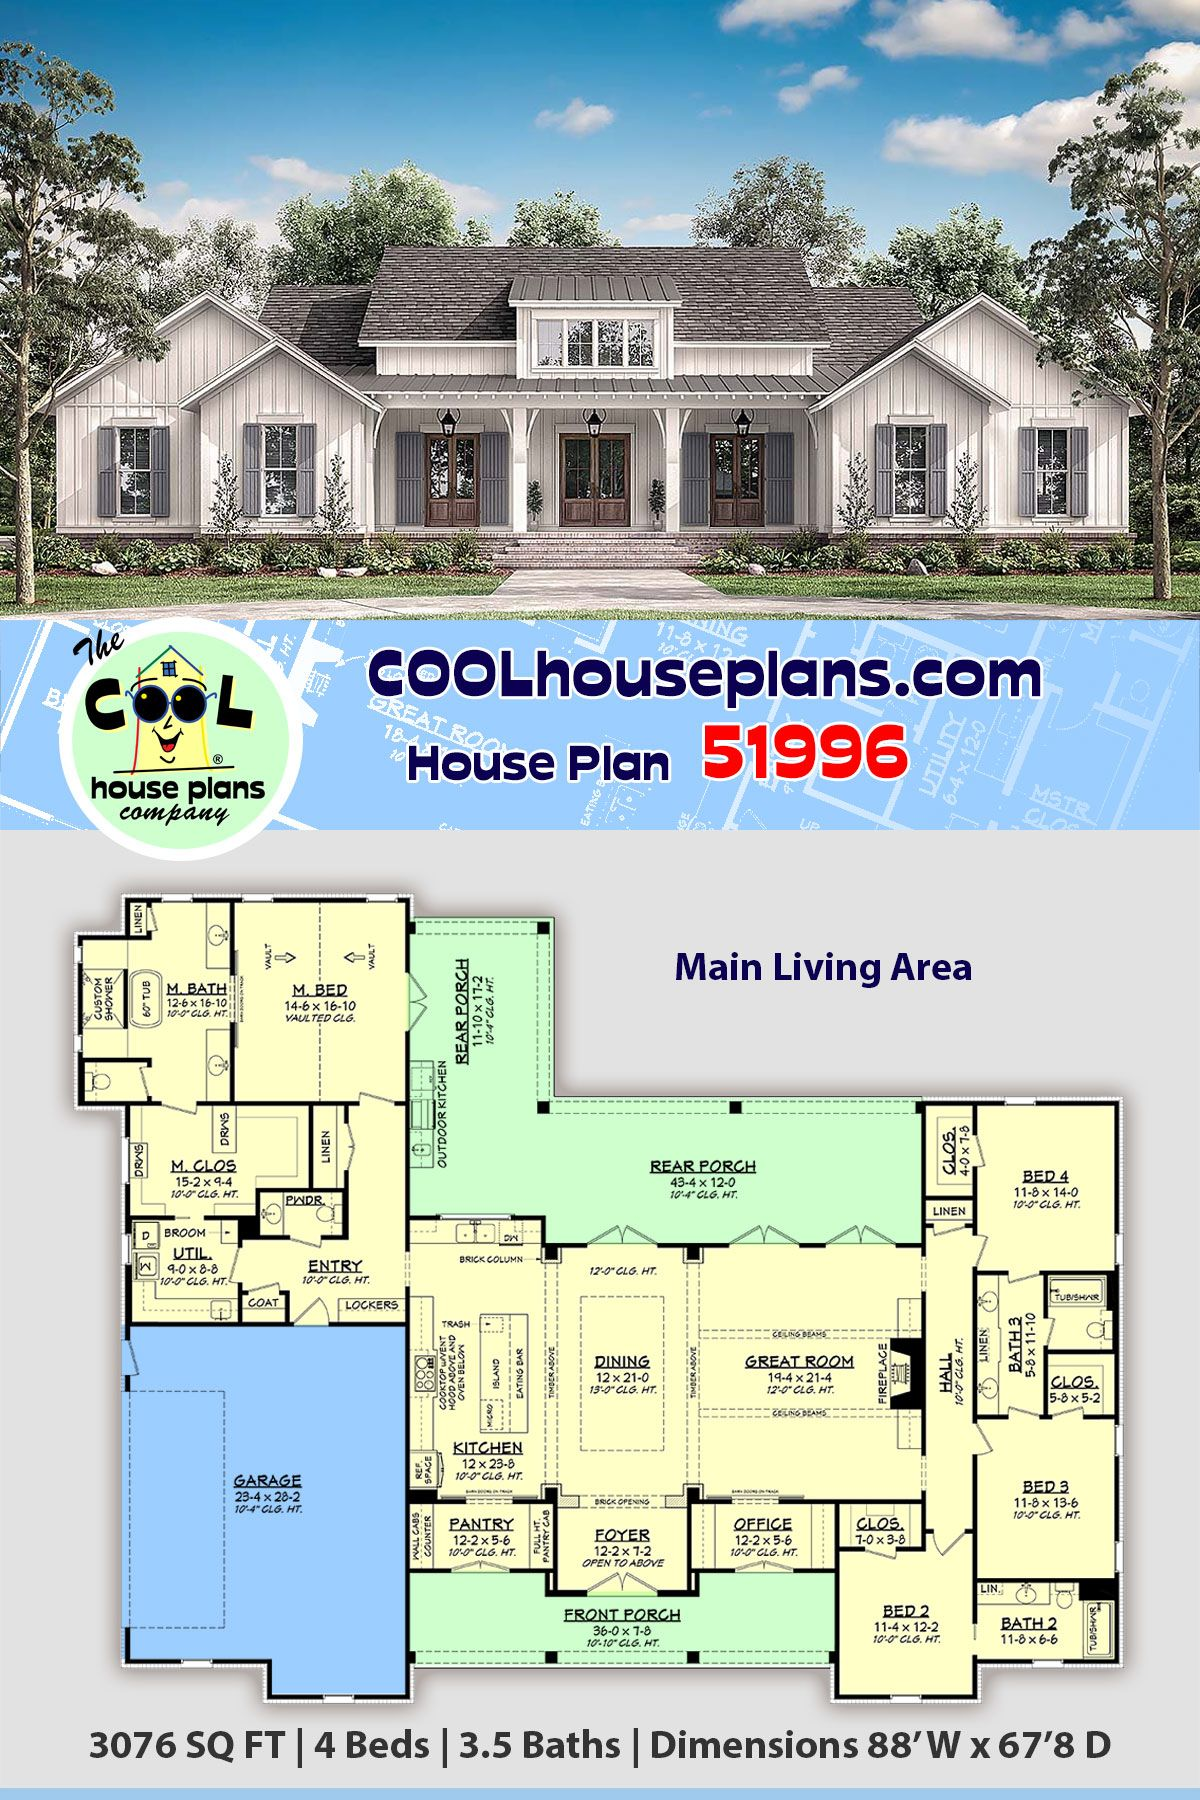 270 Architectural Ideas In 2021 House Plans How To Plan Floor Plans